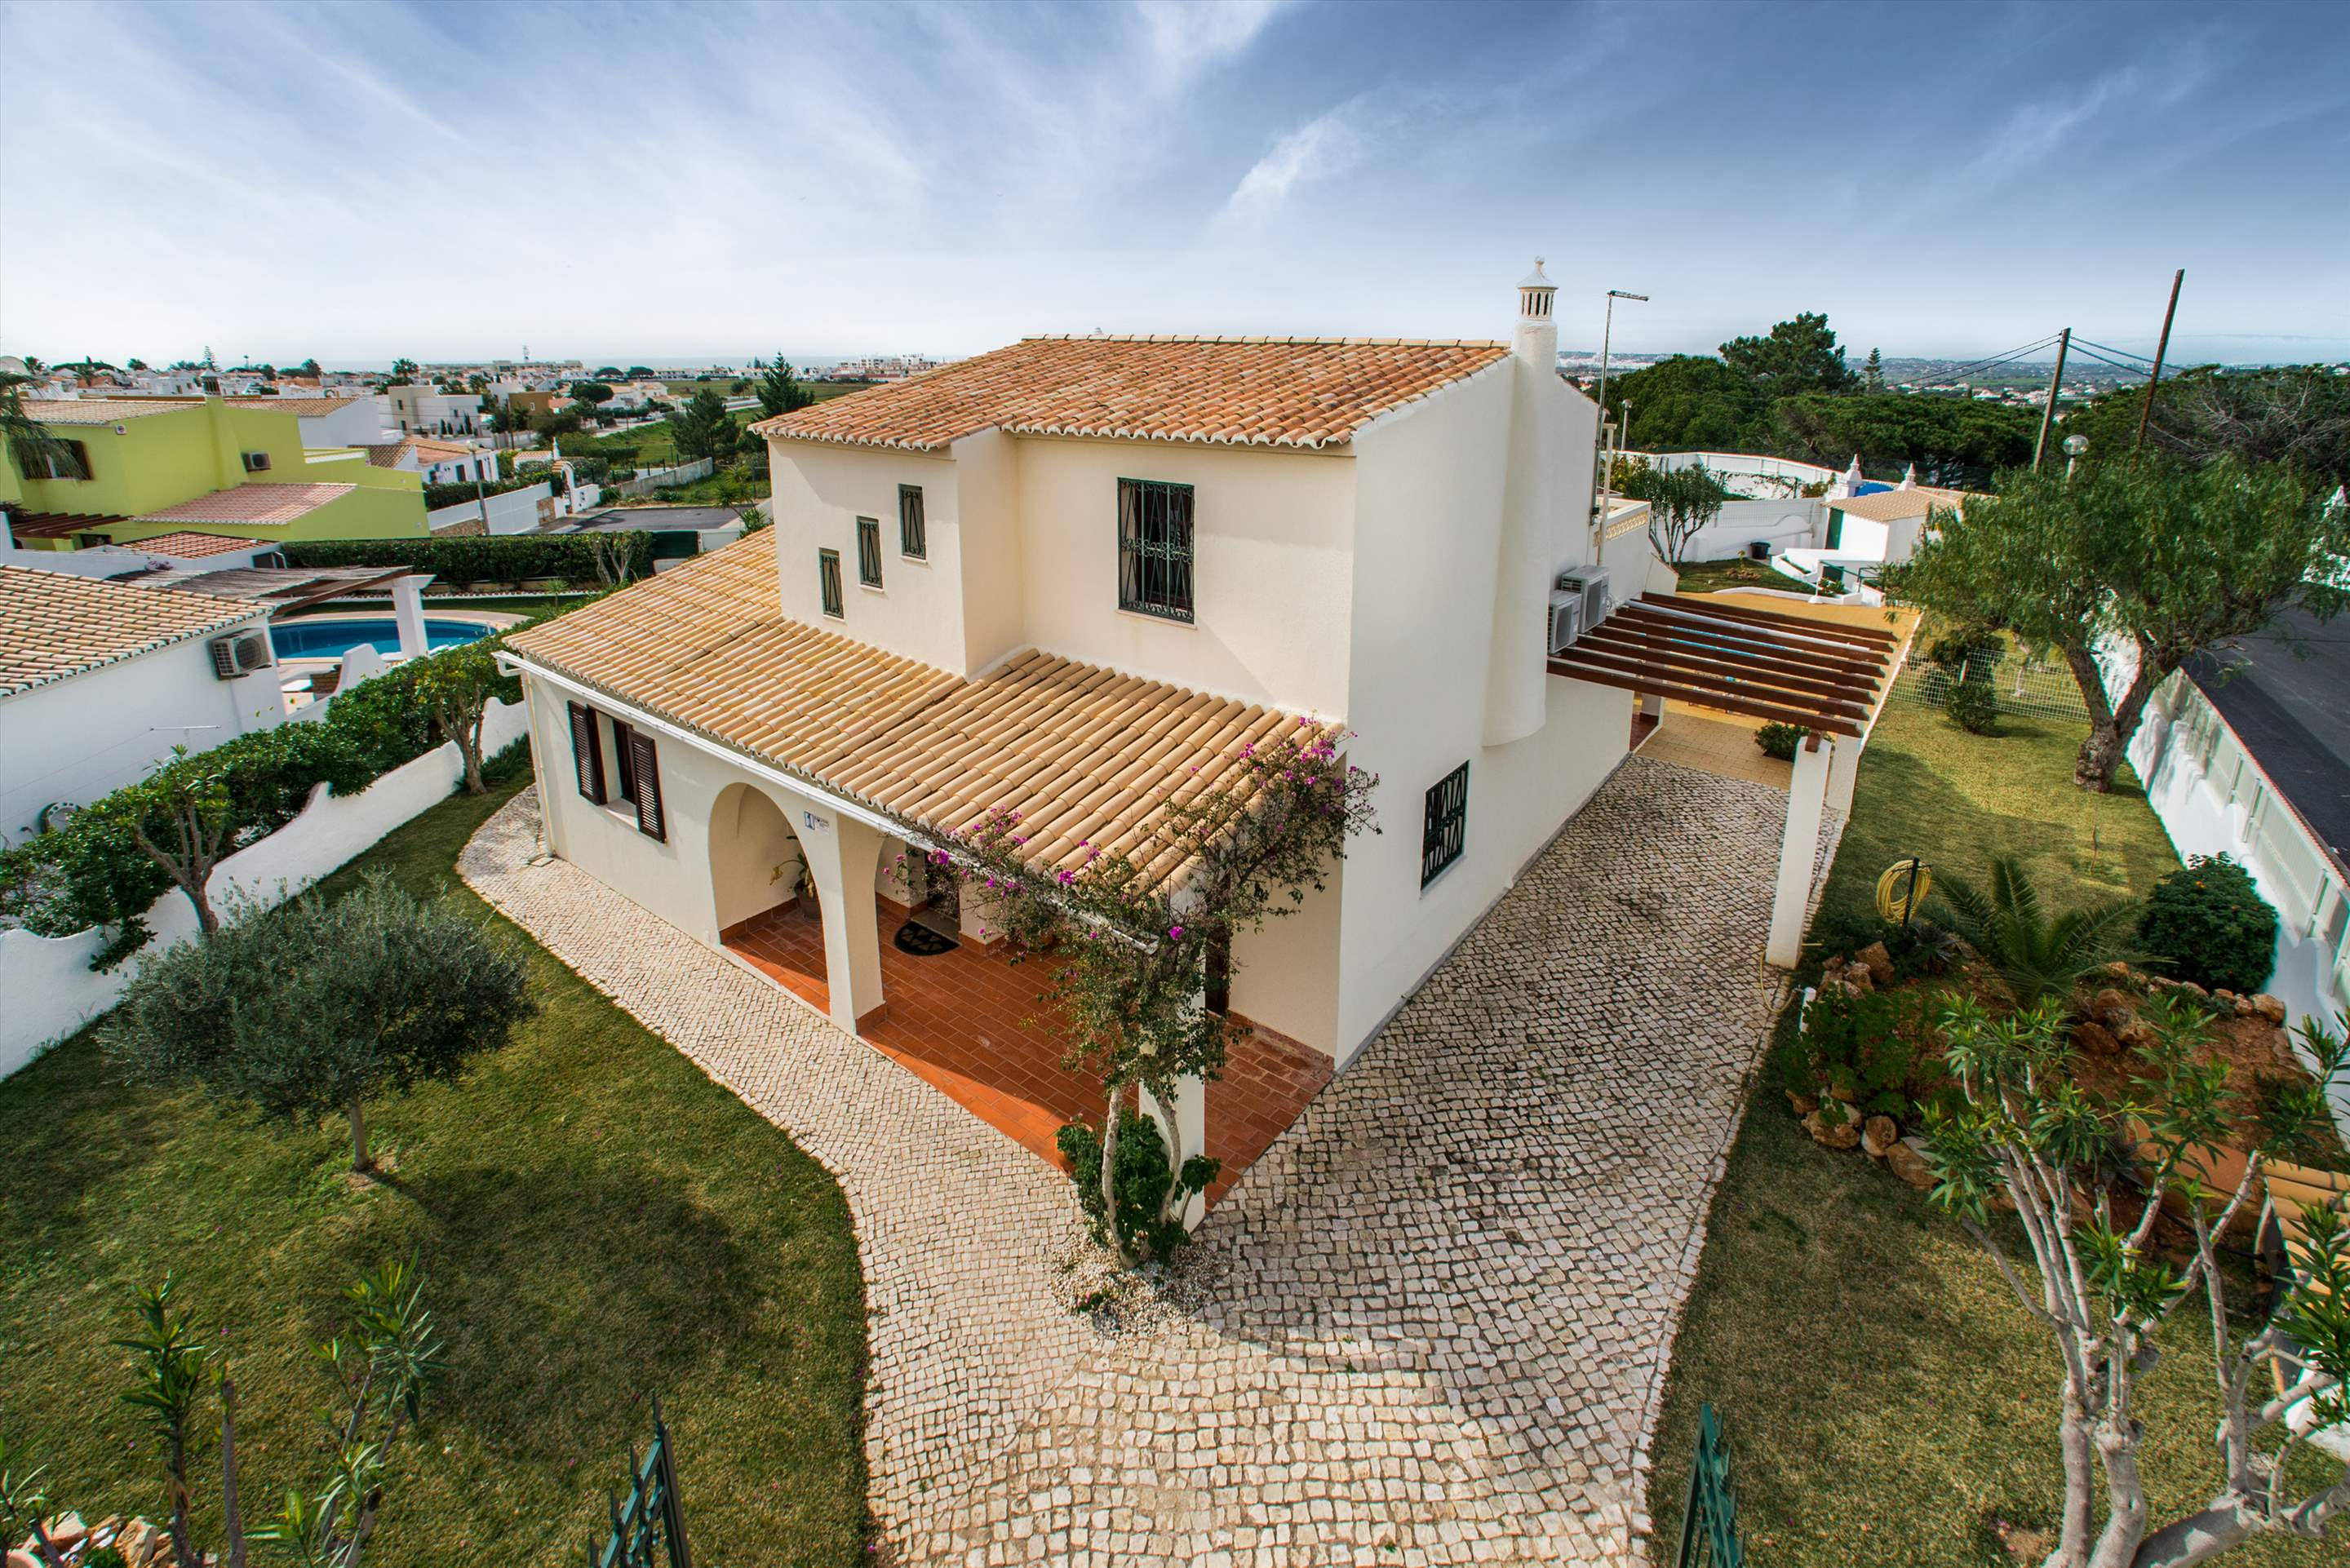 Casa Isabel, 5-6 persons rate, 3 bedroom villa in Gale, Vale da Parra and Guia, Algarve Photo #12